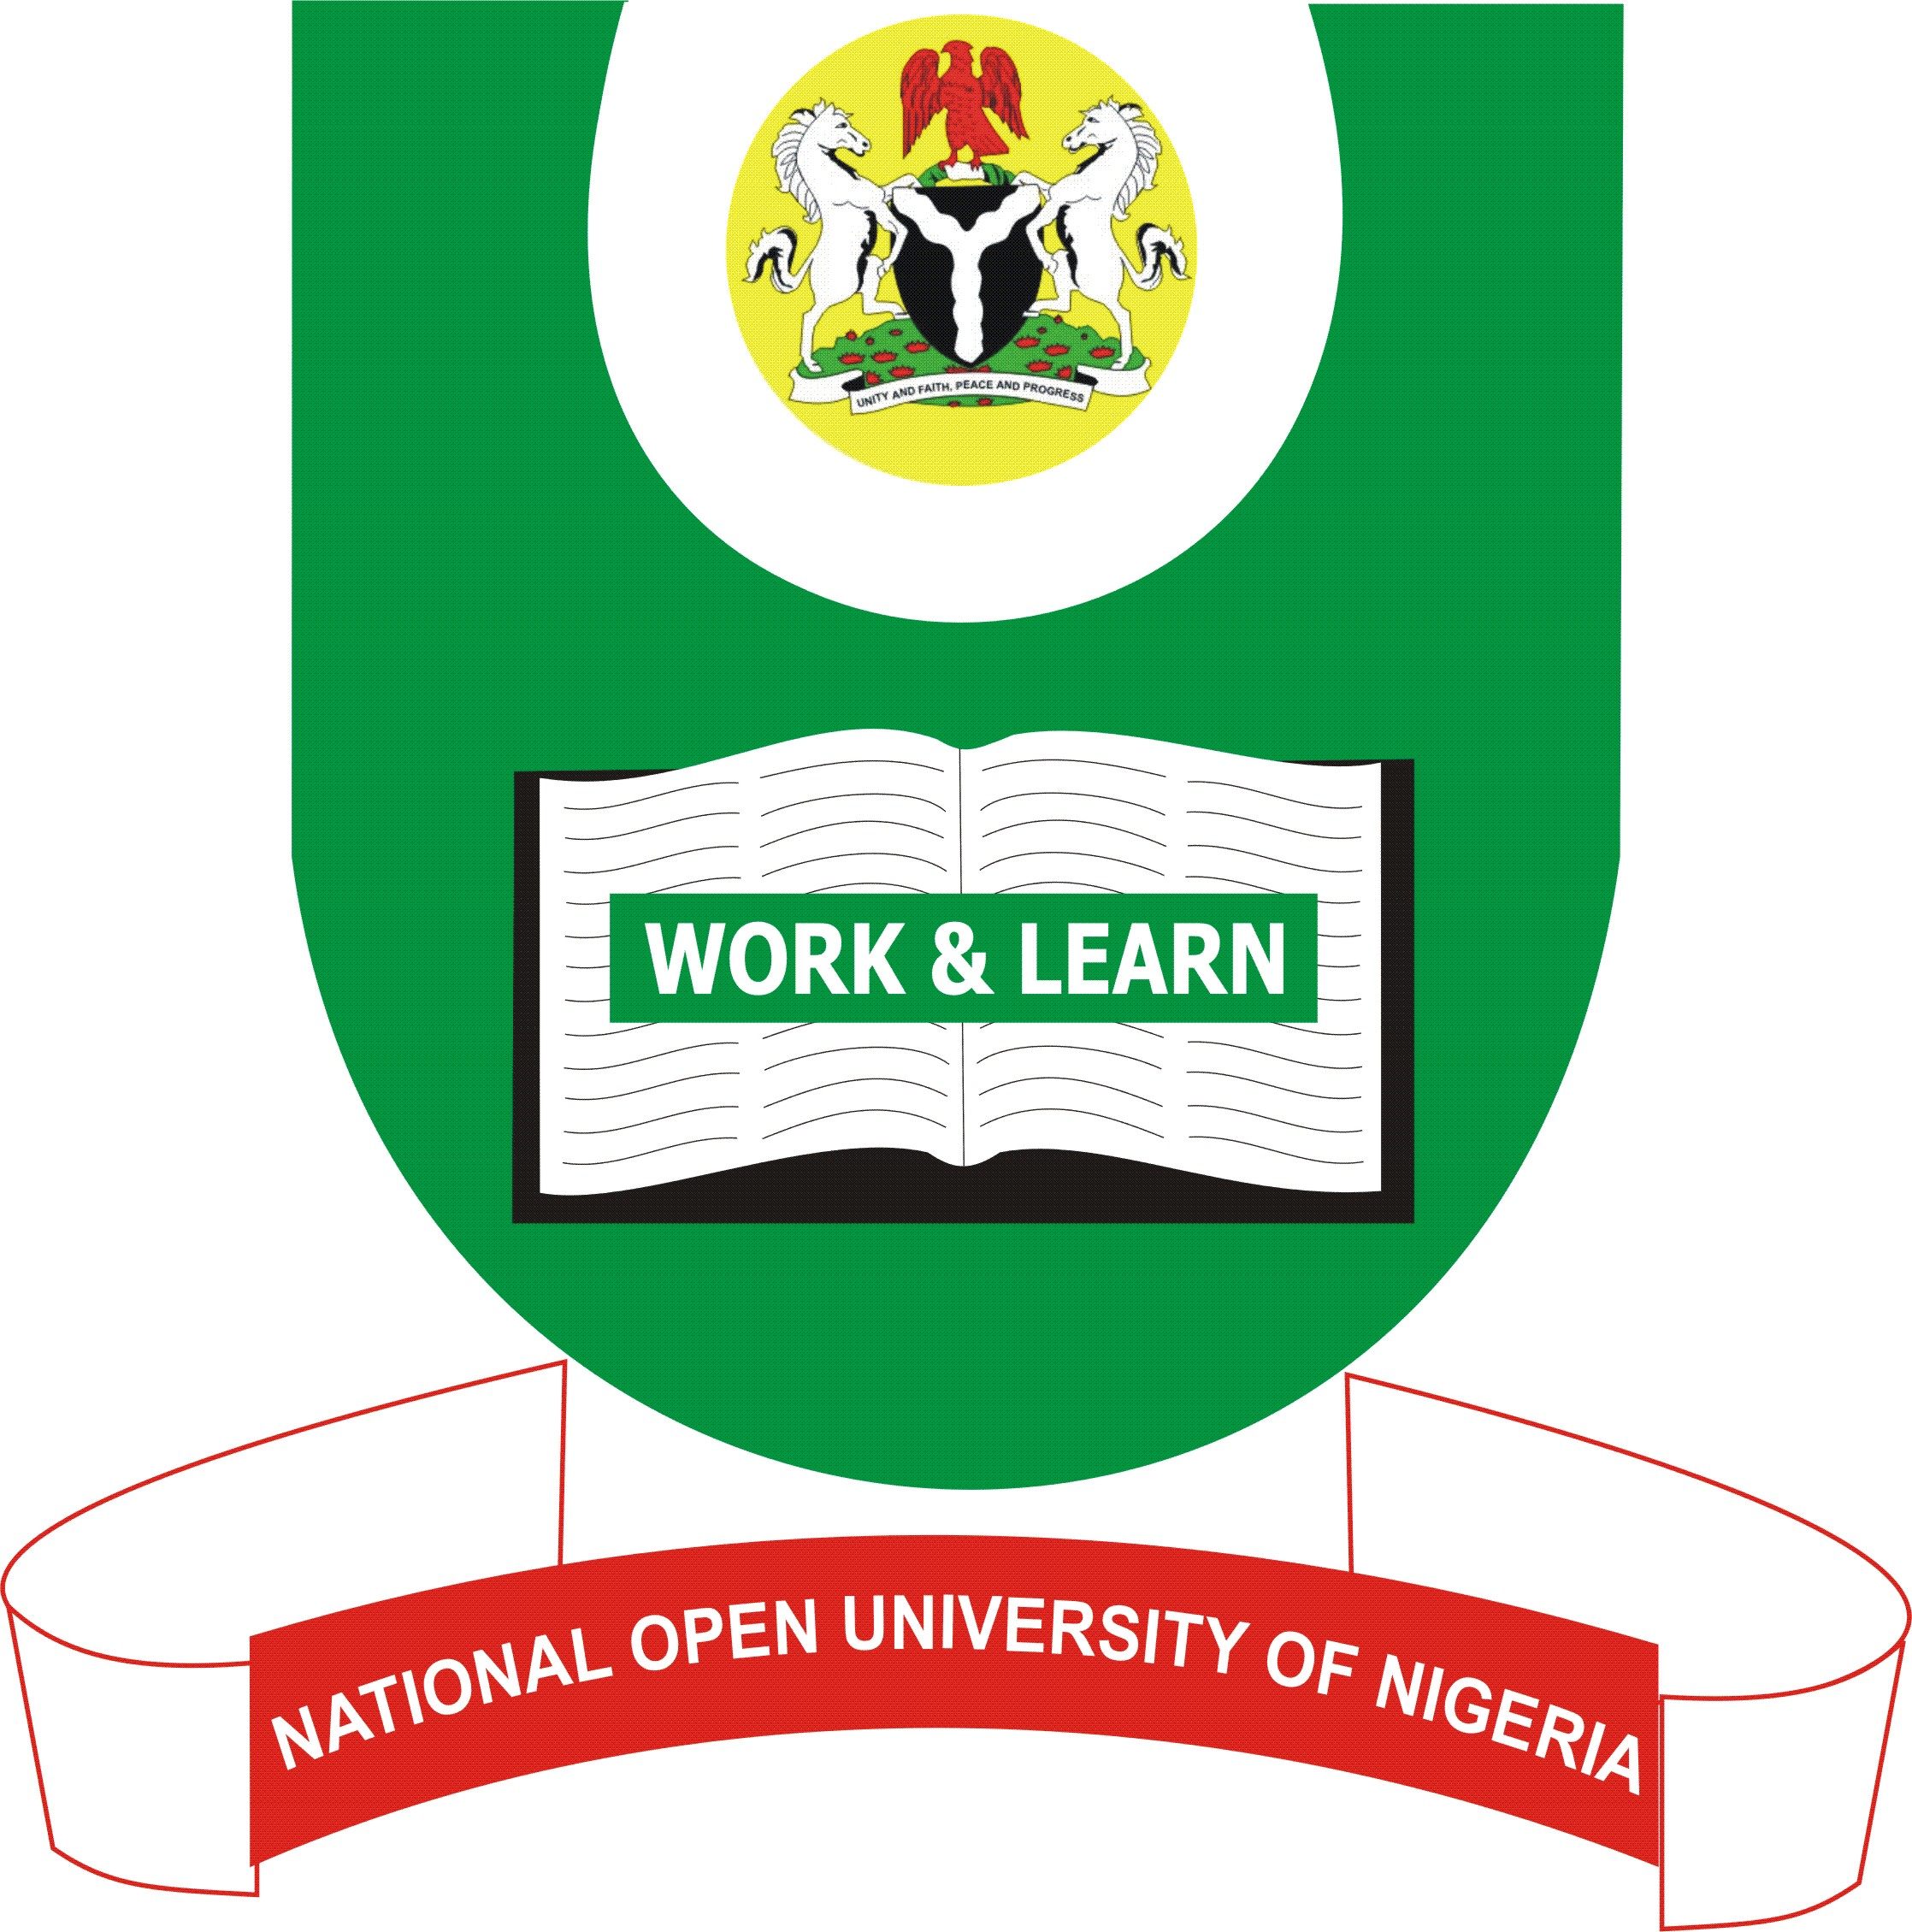 FREE Mobile Data For National Open University Students